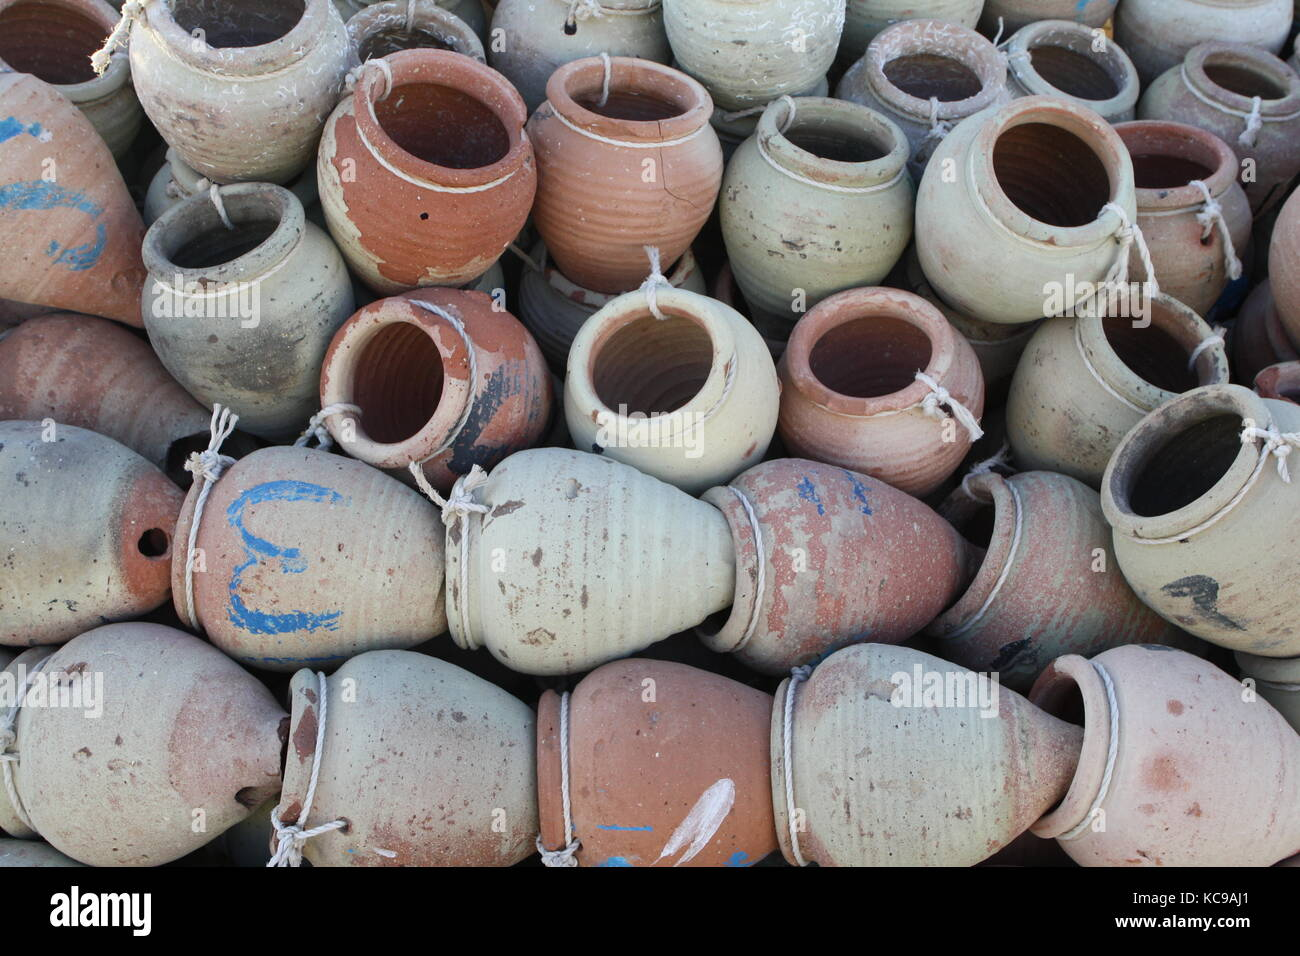 Tontöpfe Für Fischfang In Tunesien   Clay Pots For Fishing In Tunisia    Stock Image